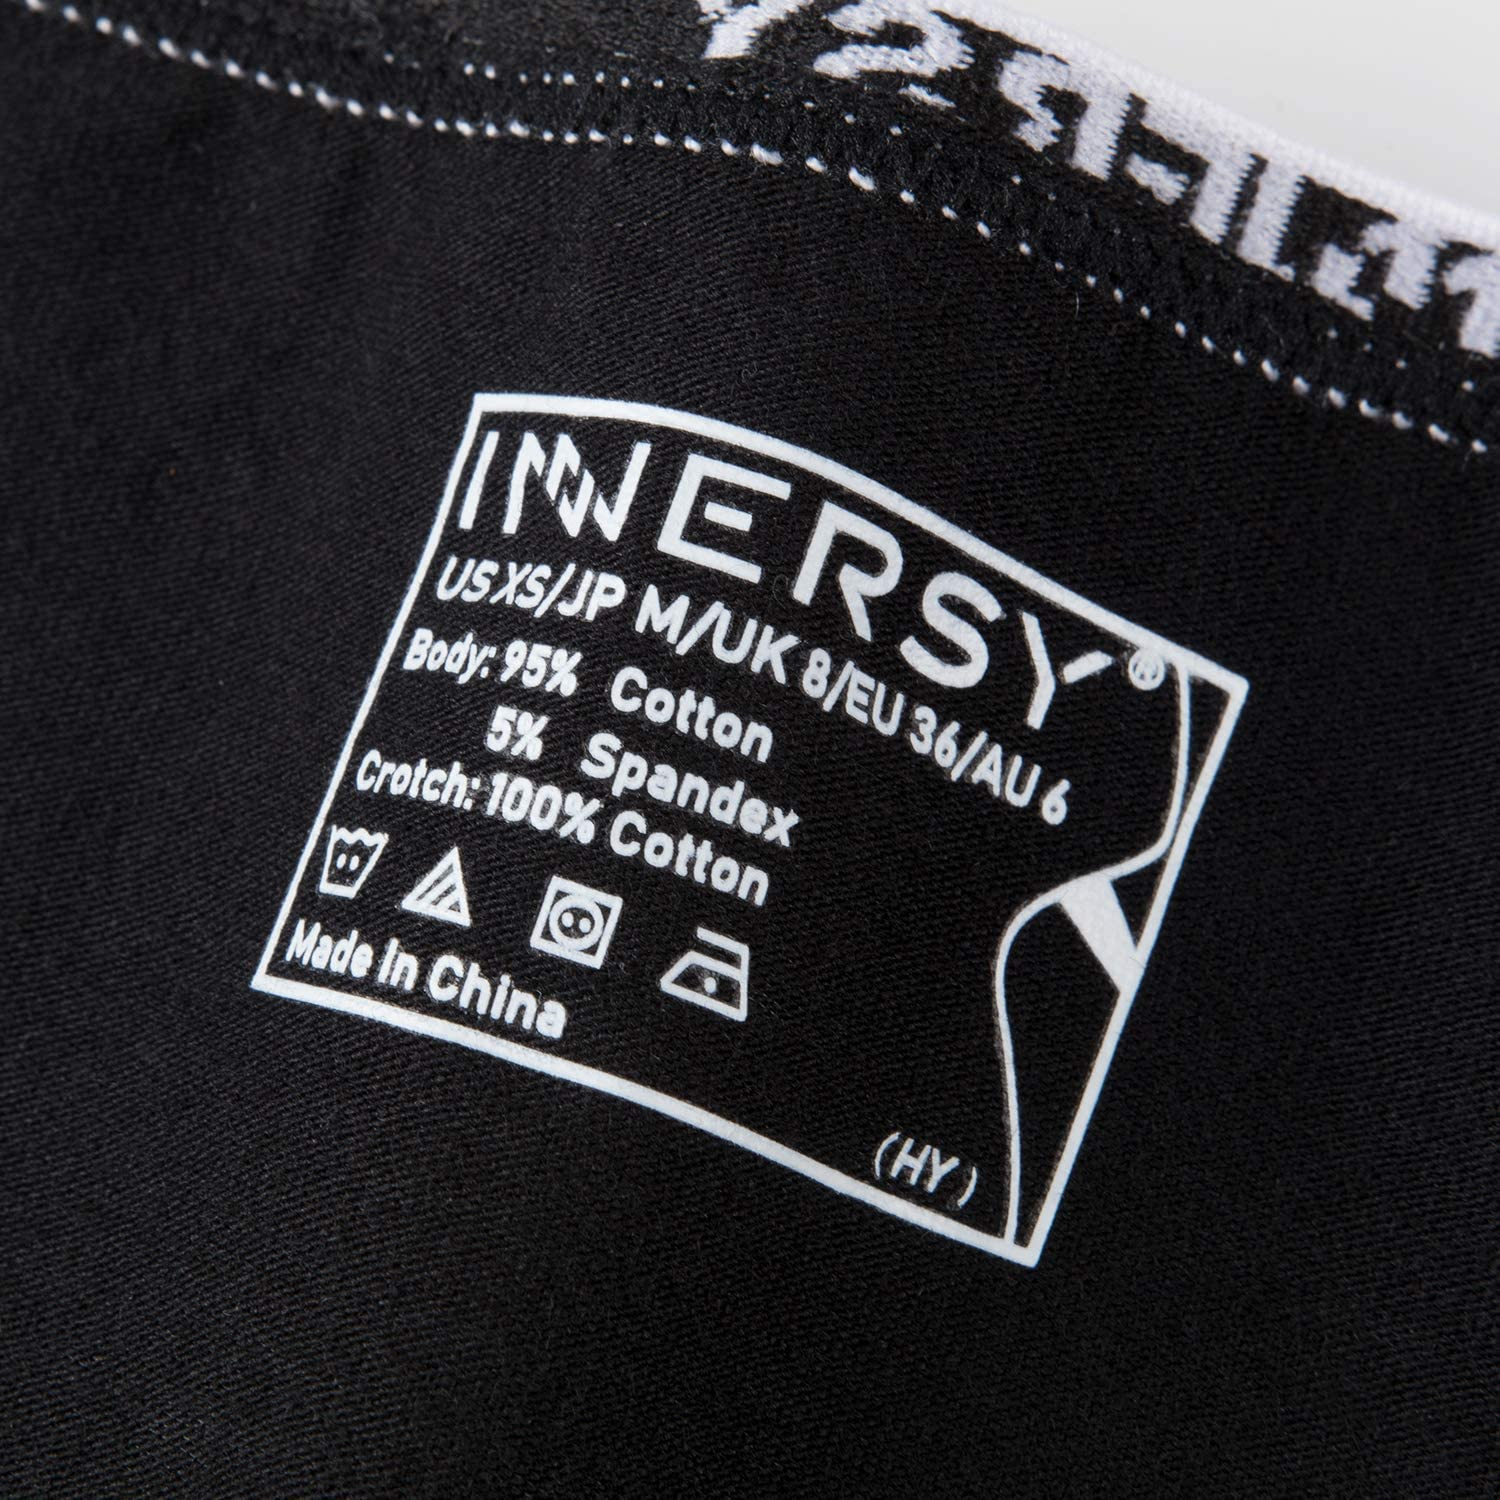 INNERSY Ladies Cotton Underwear Low Rise Full Briefs Comfy Sports Knickers Pack of 6